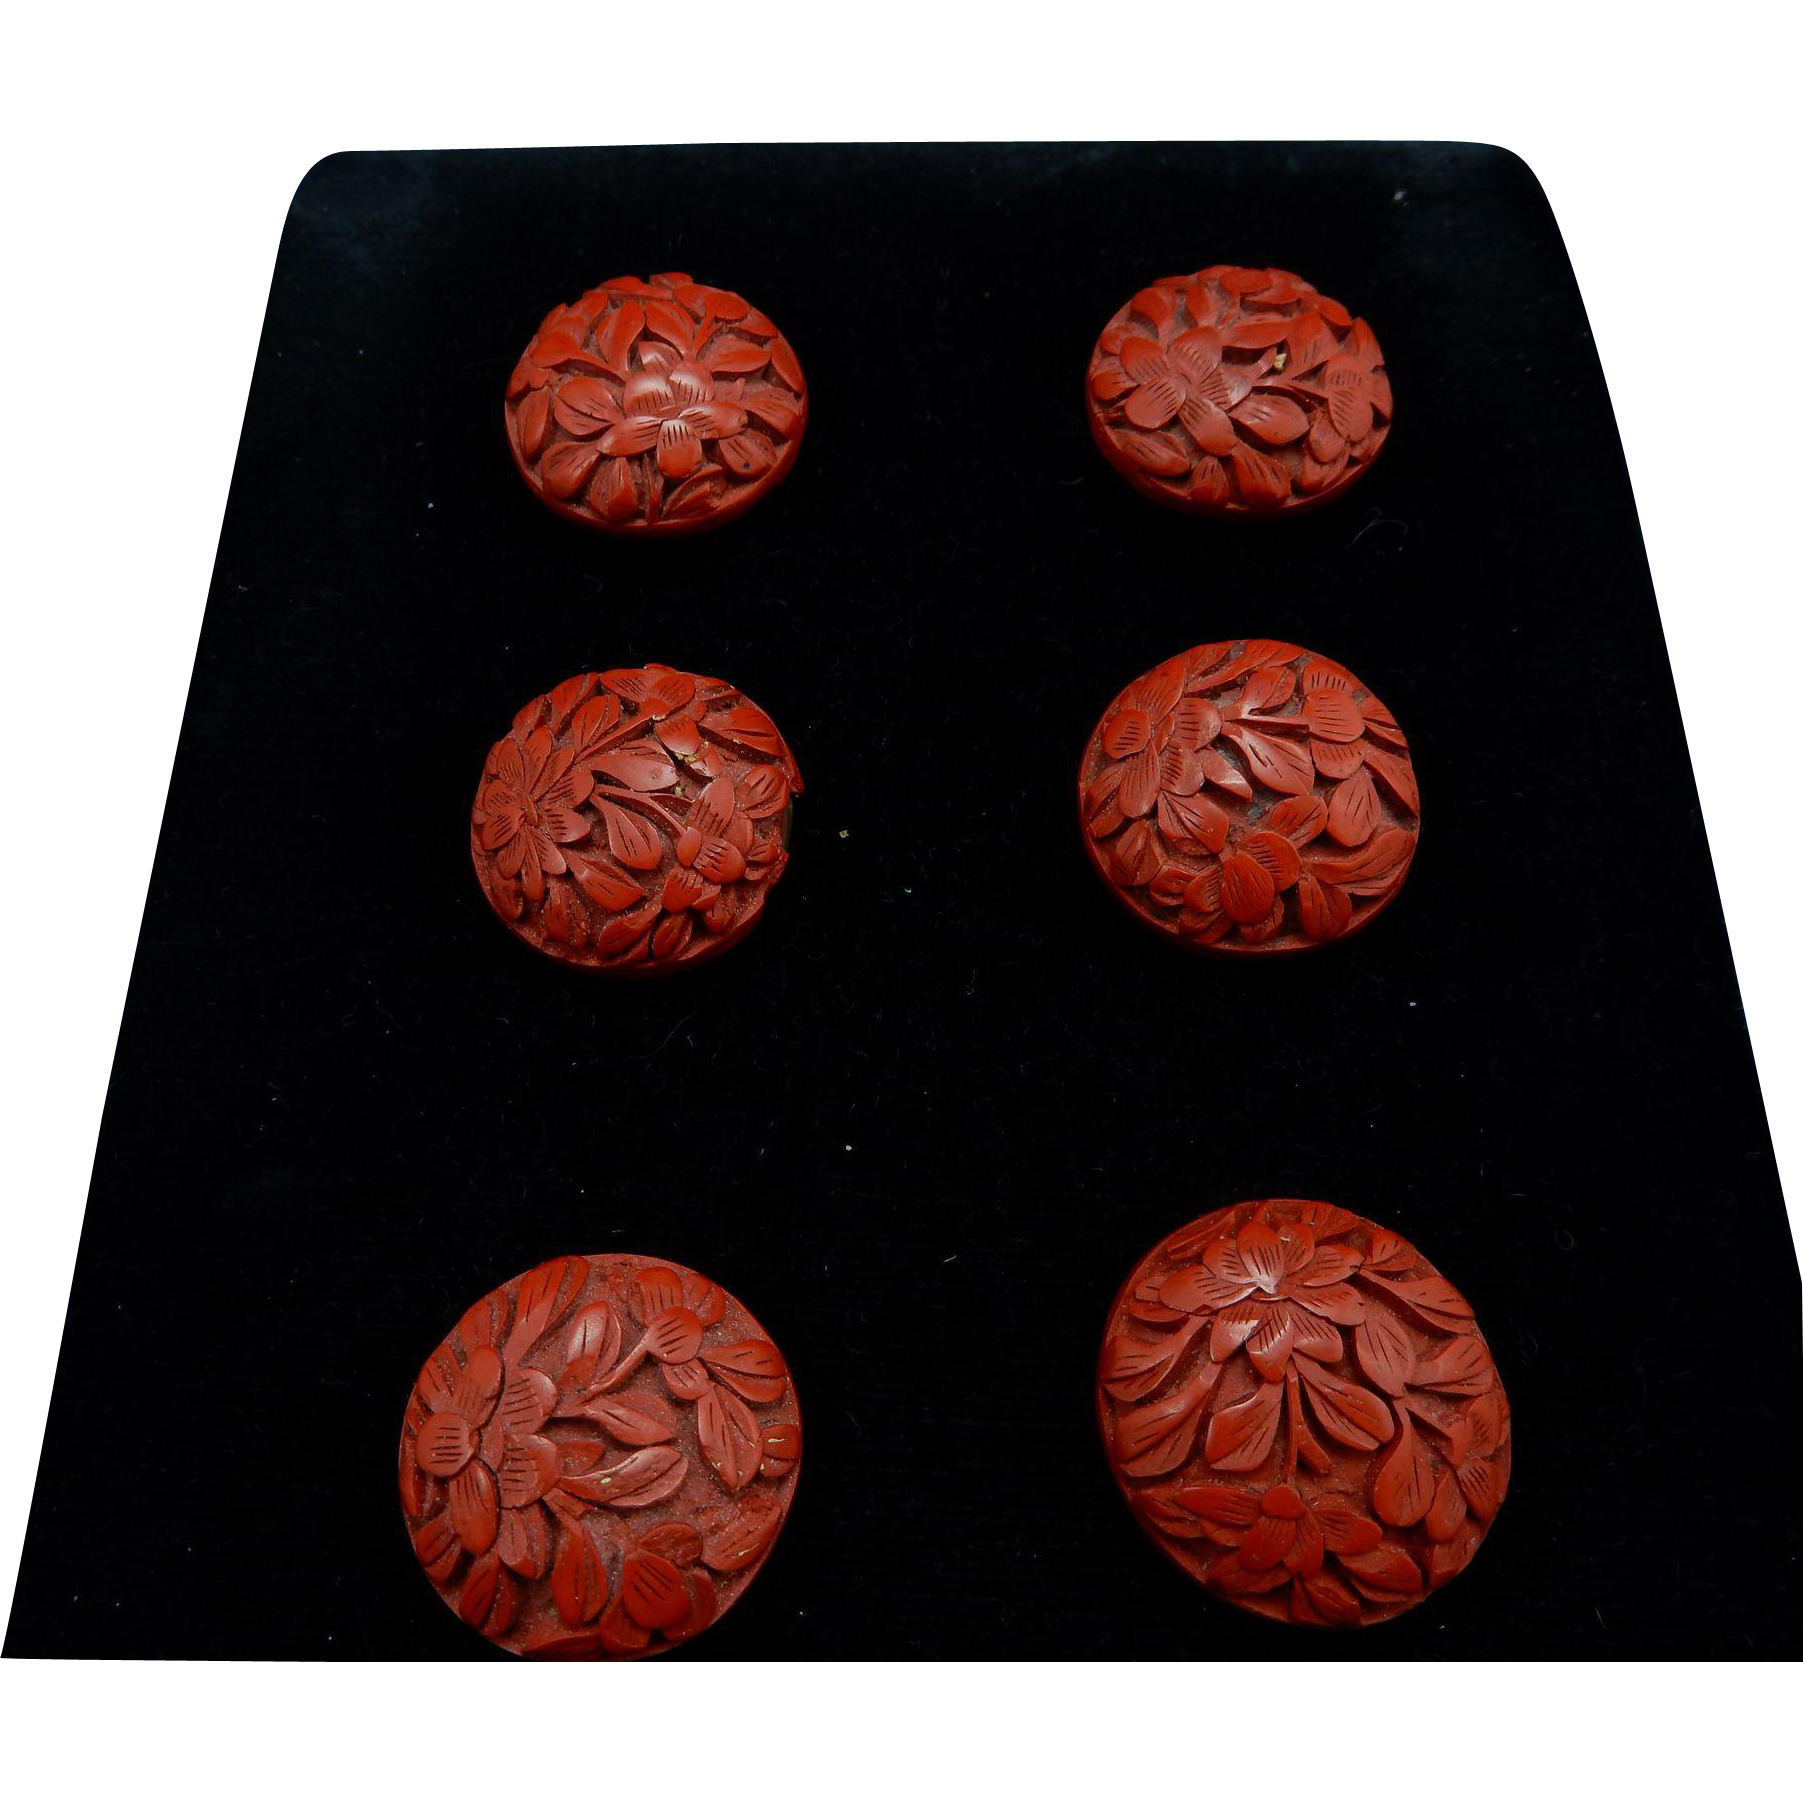 Vintage Cinnabar Laquor Buttons Sold On Ruby Lane